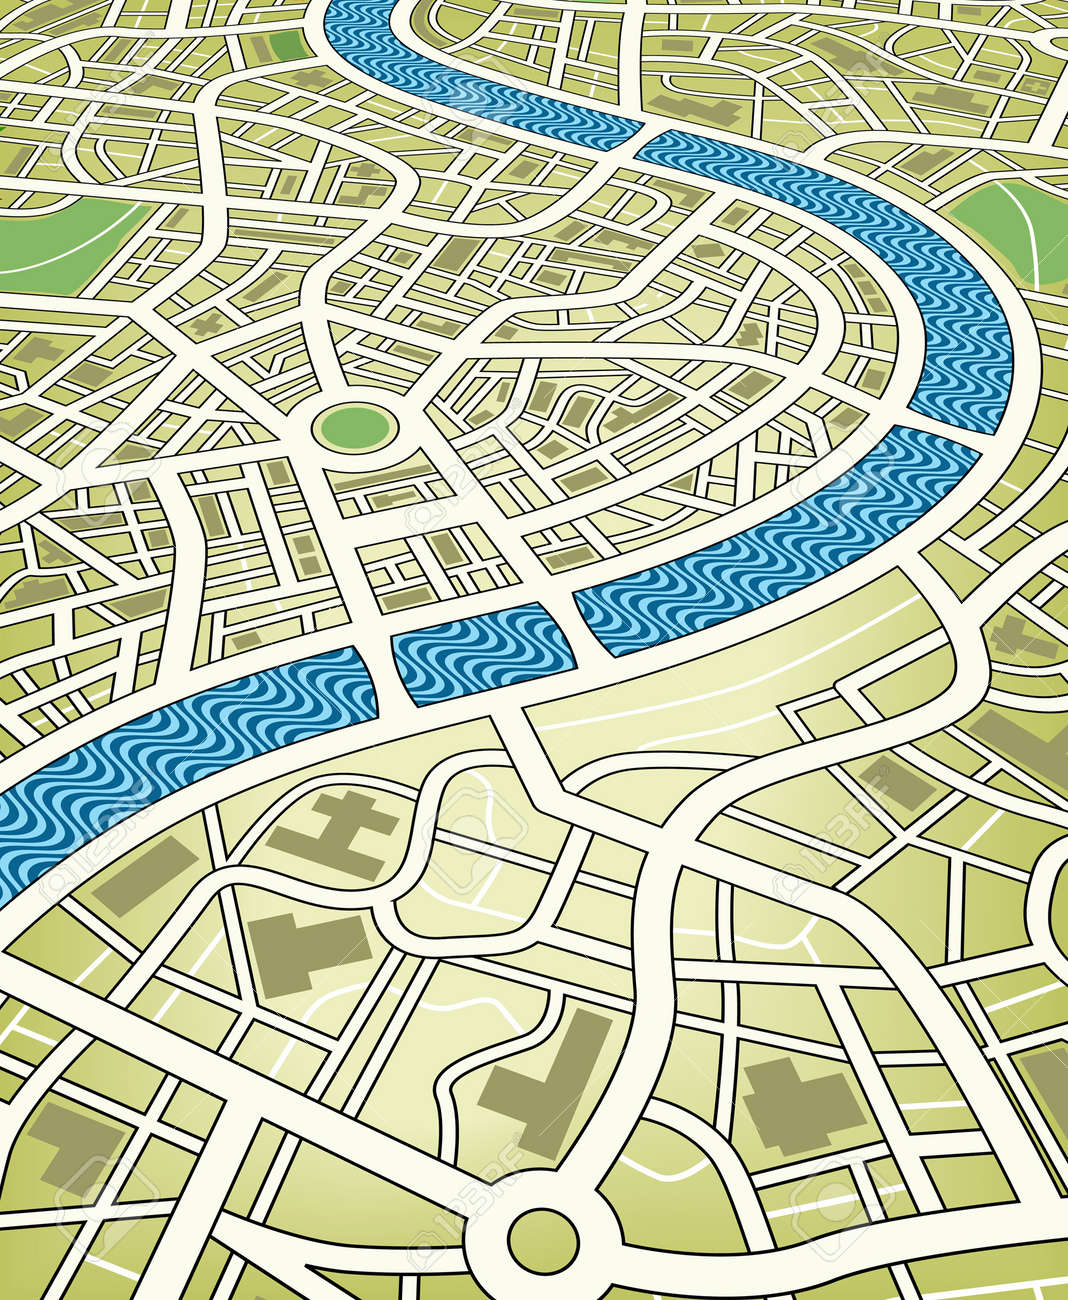 Editable vector illustration of a nameless street map from an angled perspective Stock Vector - 4788137